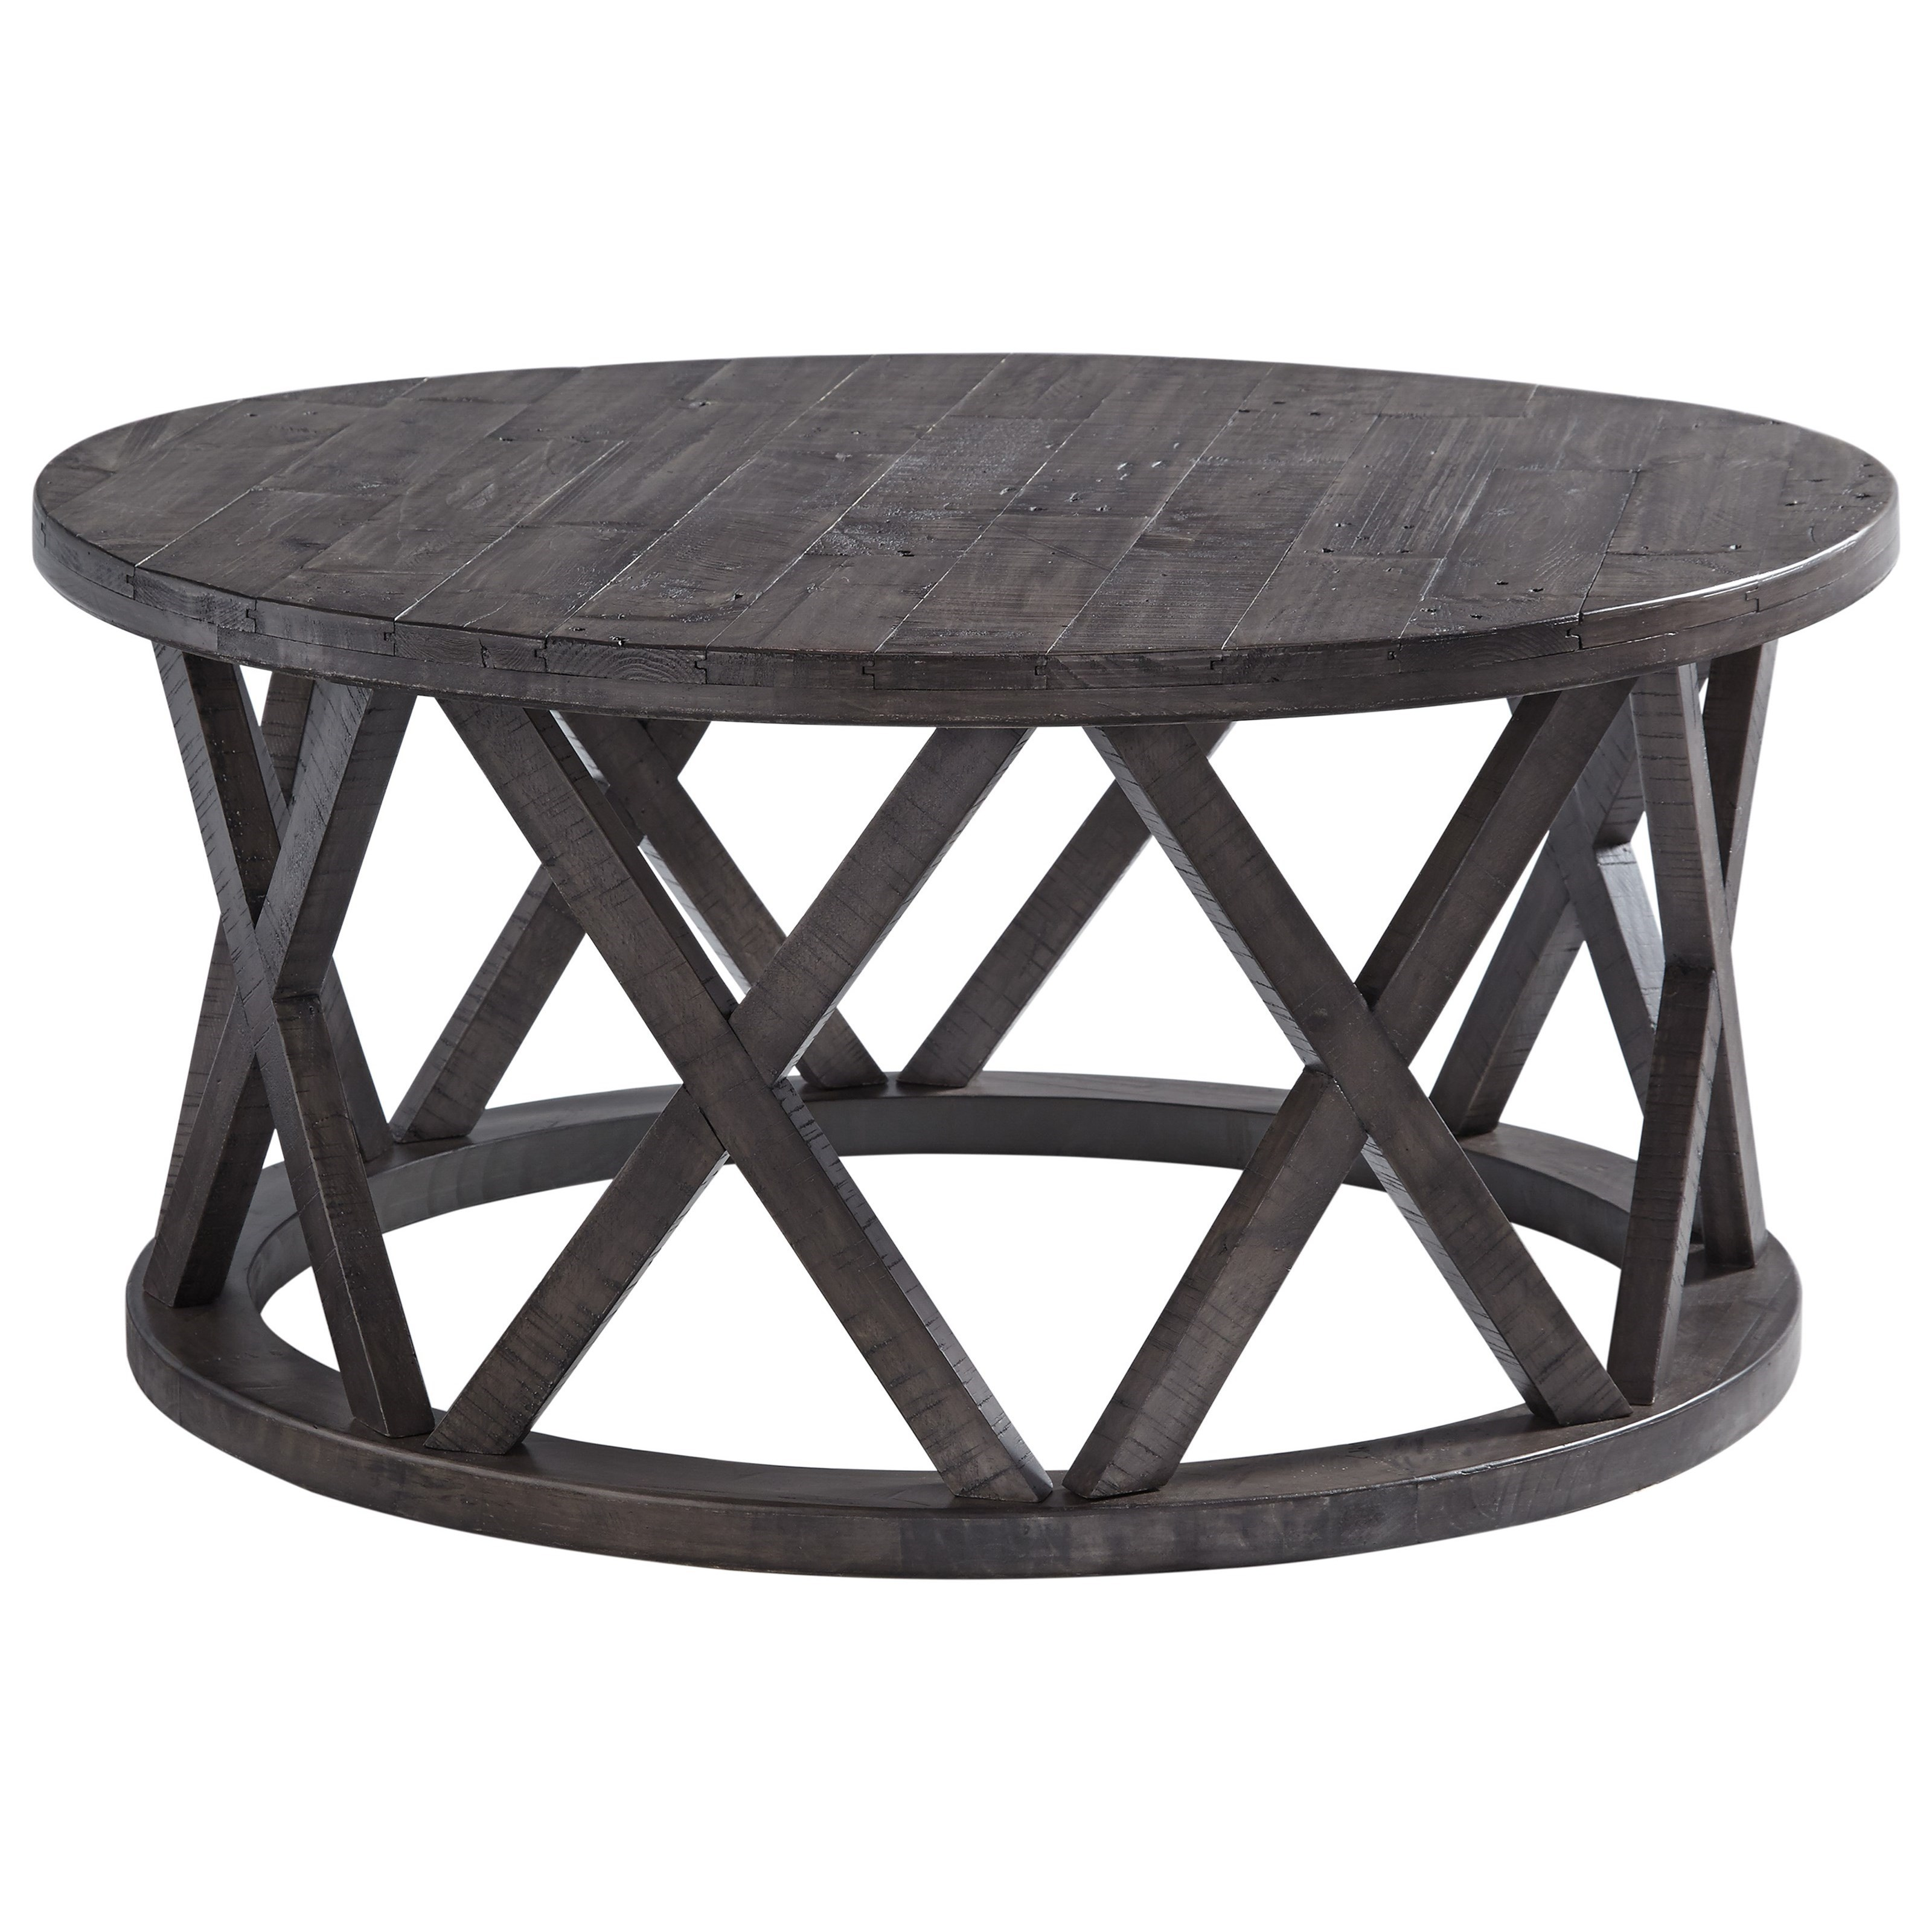 Sharzane Round Cocktail Table by Signature Design by Ashley at Standard Furniture